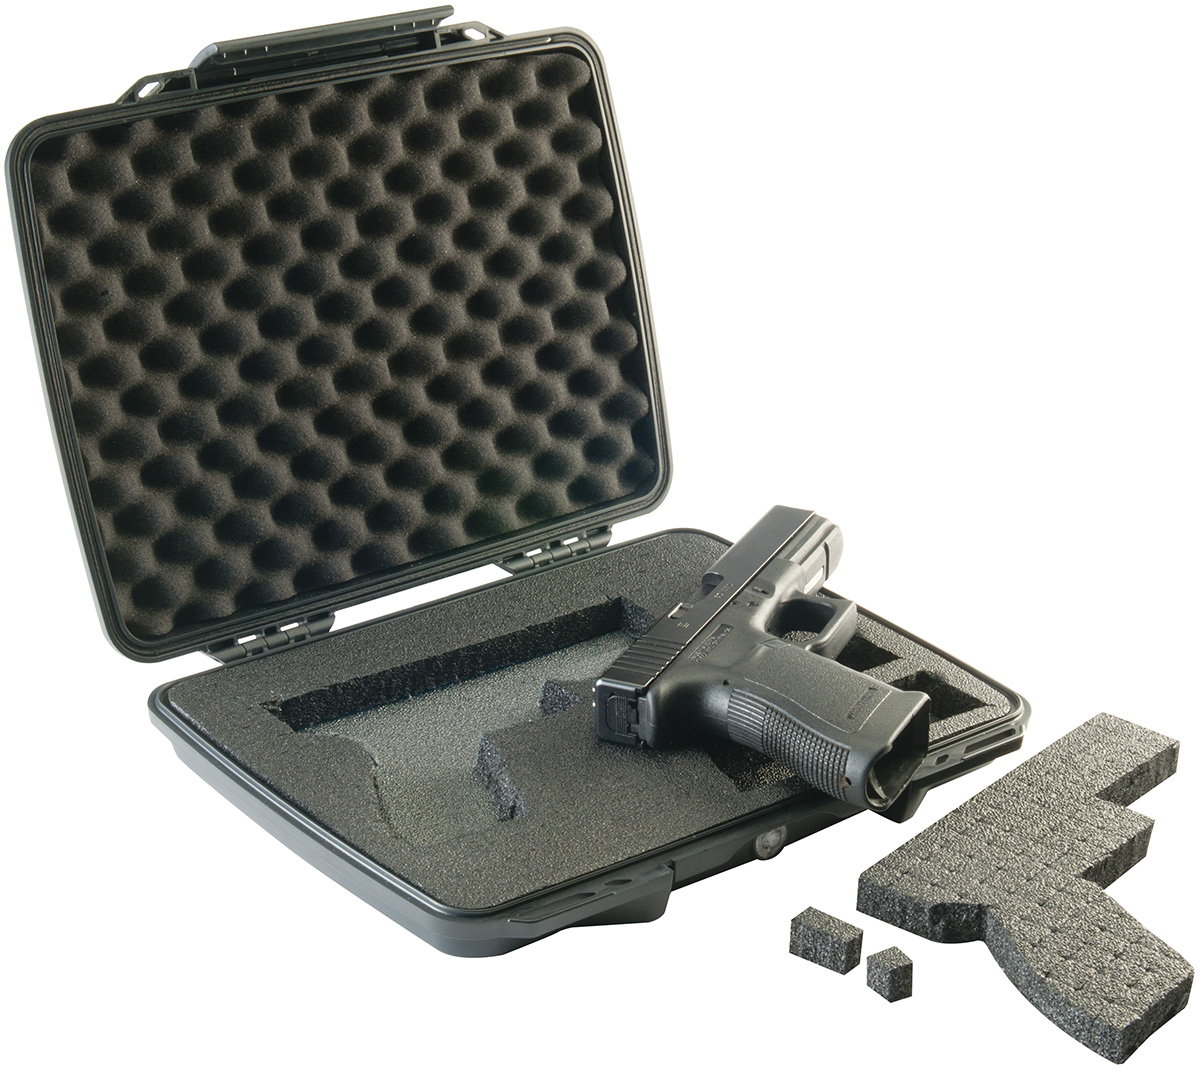 pelican peli products P1075 usa made pistol gun hard case